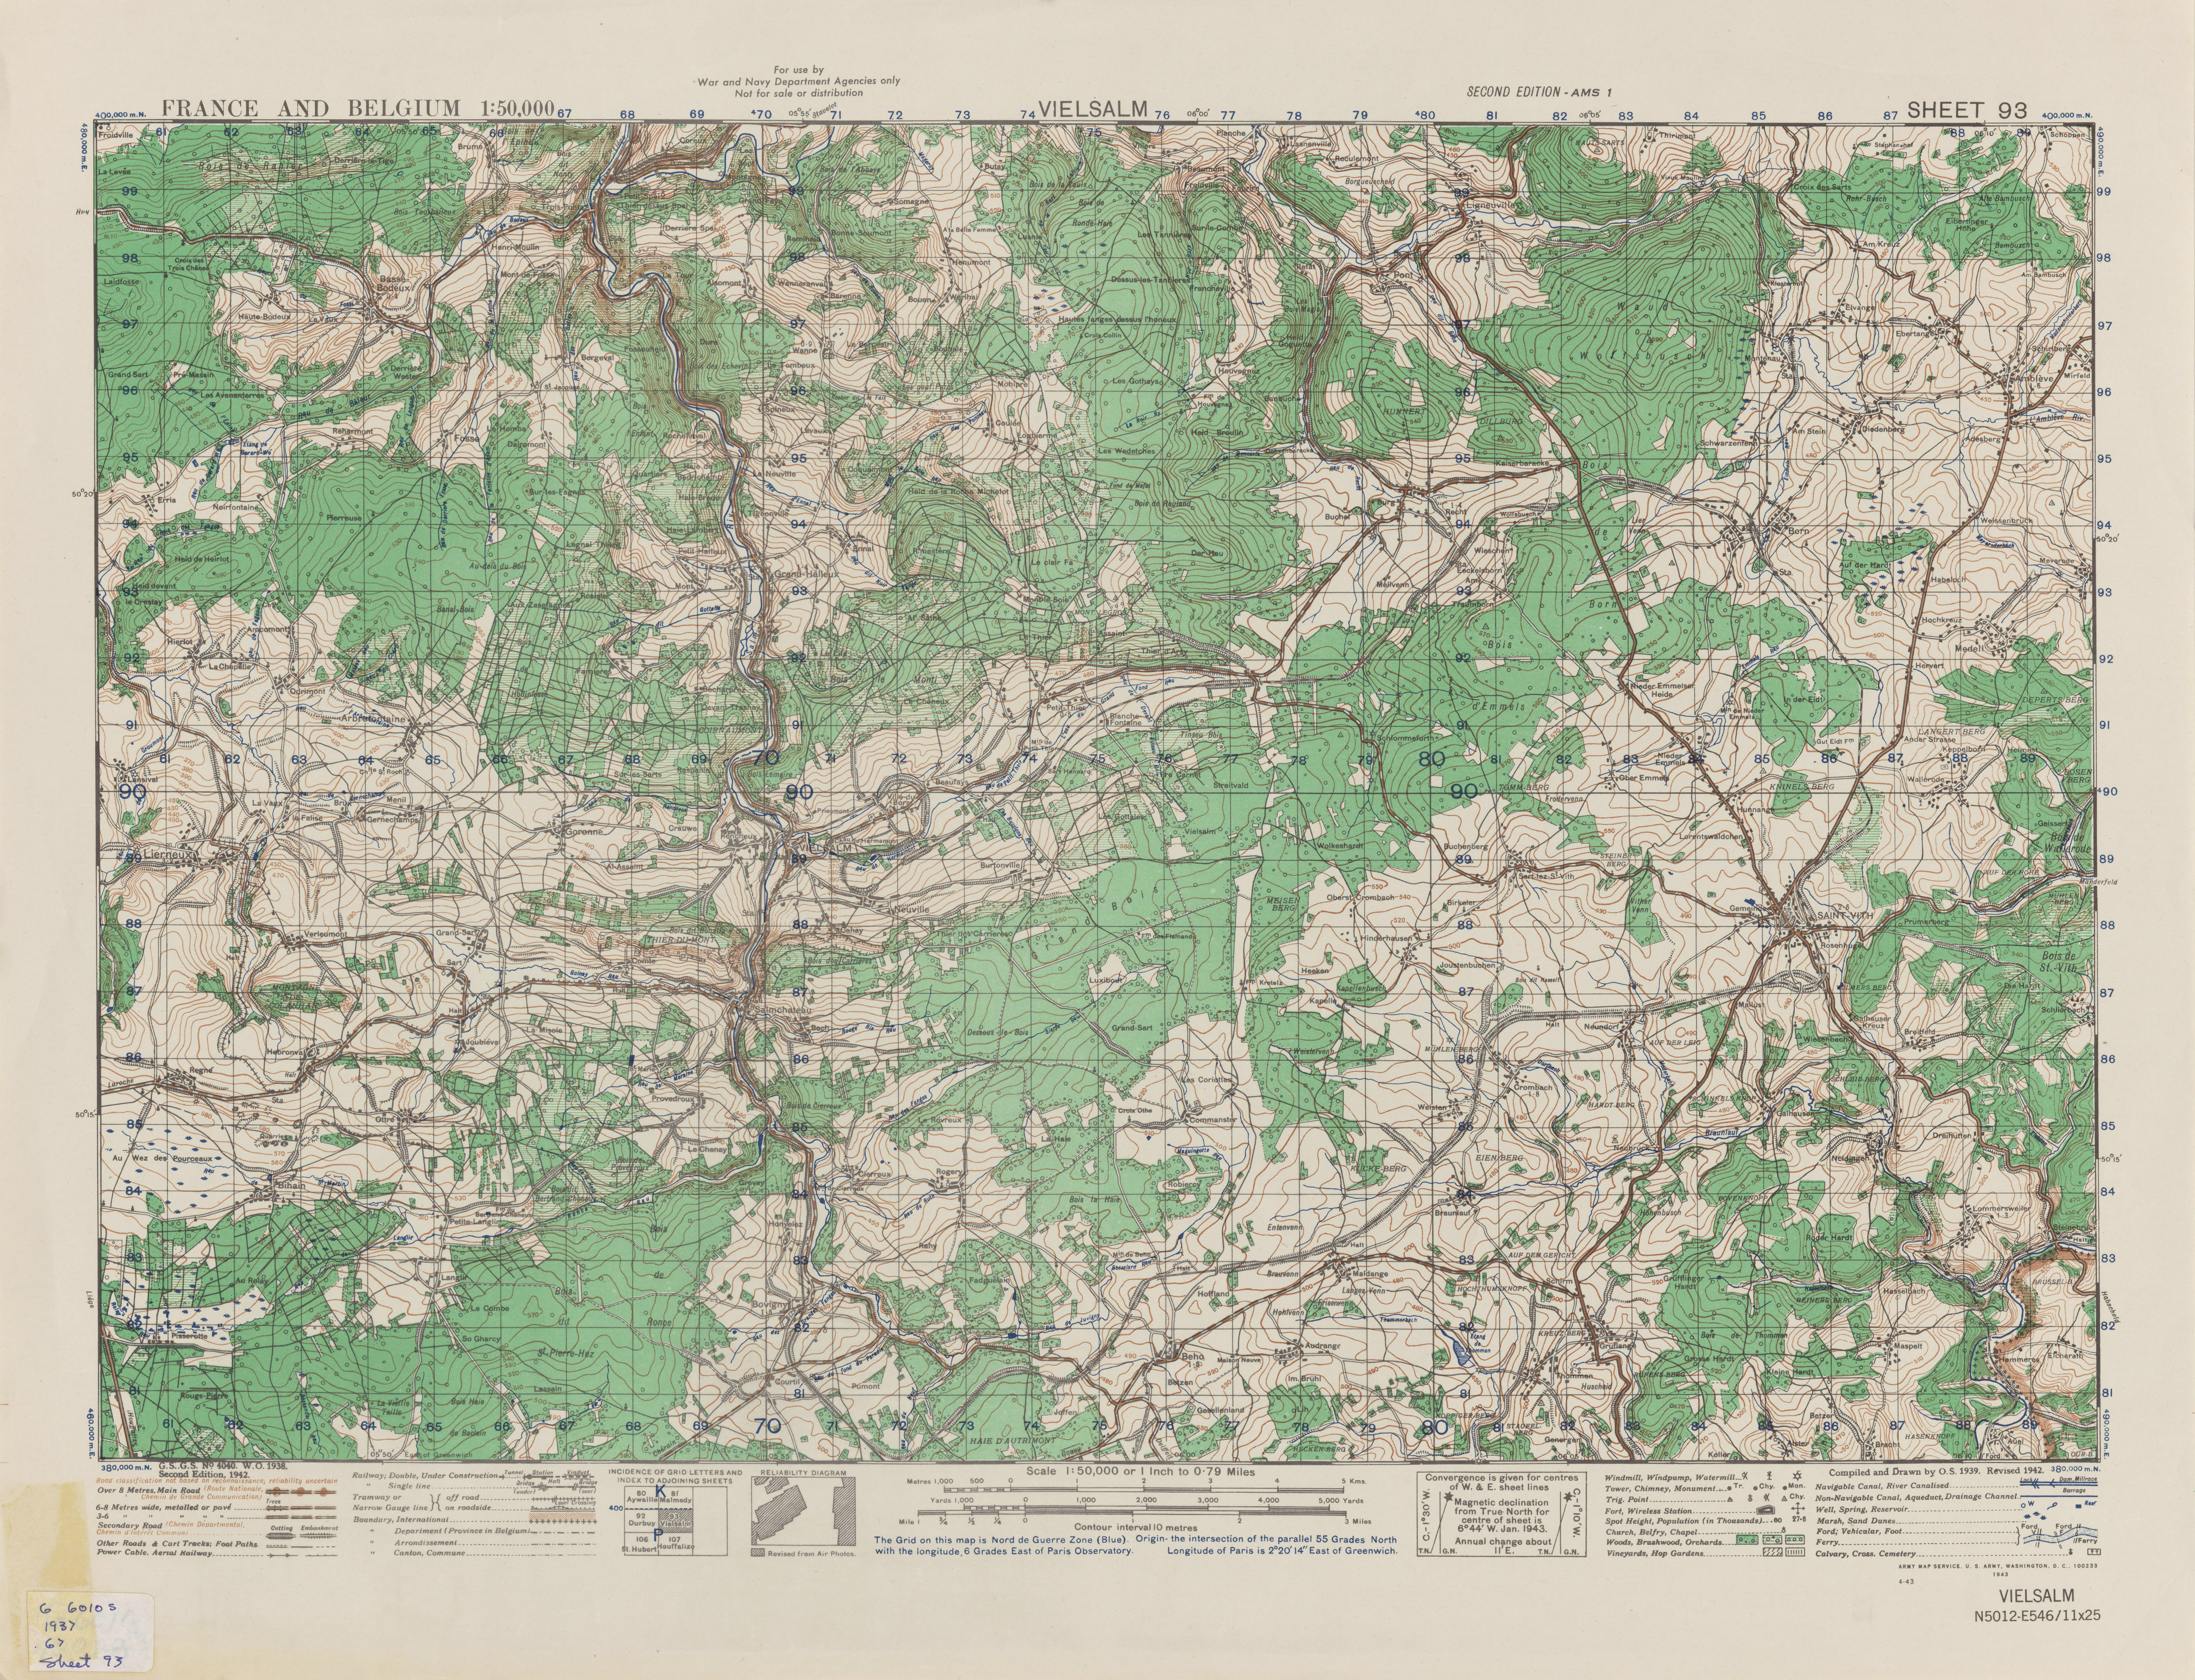 Belgium AMS Topographic Maps PerryCasta eda Map Collection UT – Topographic Map of Belgium